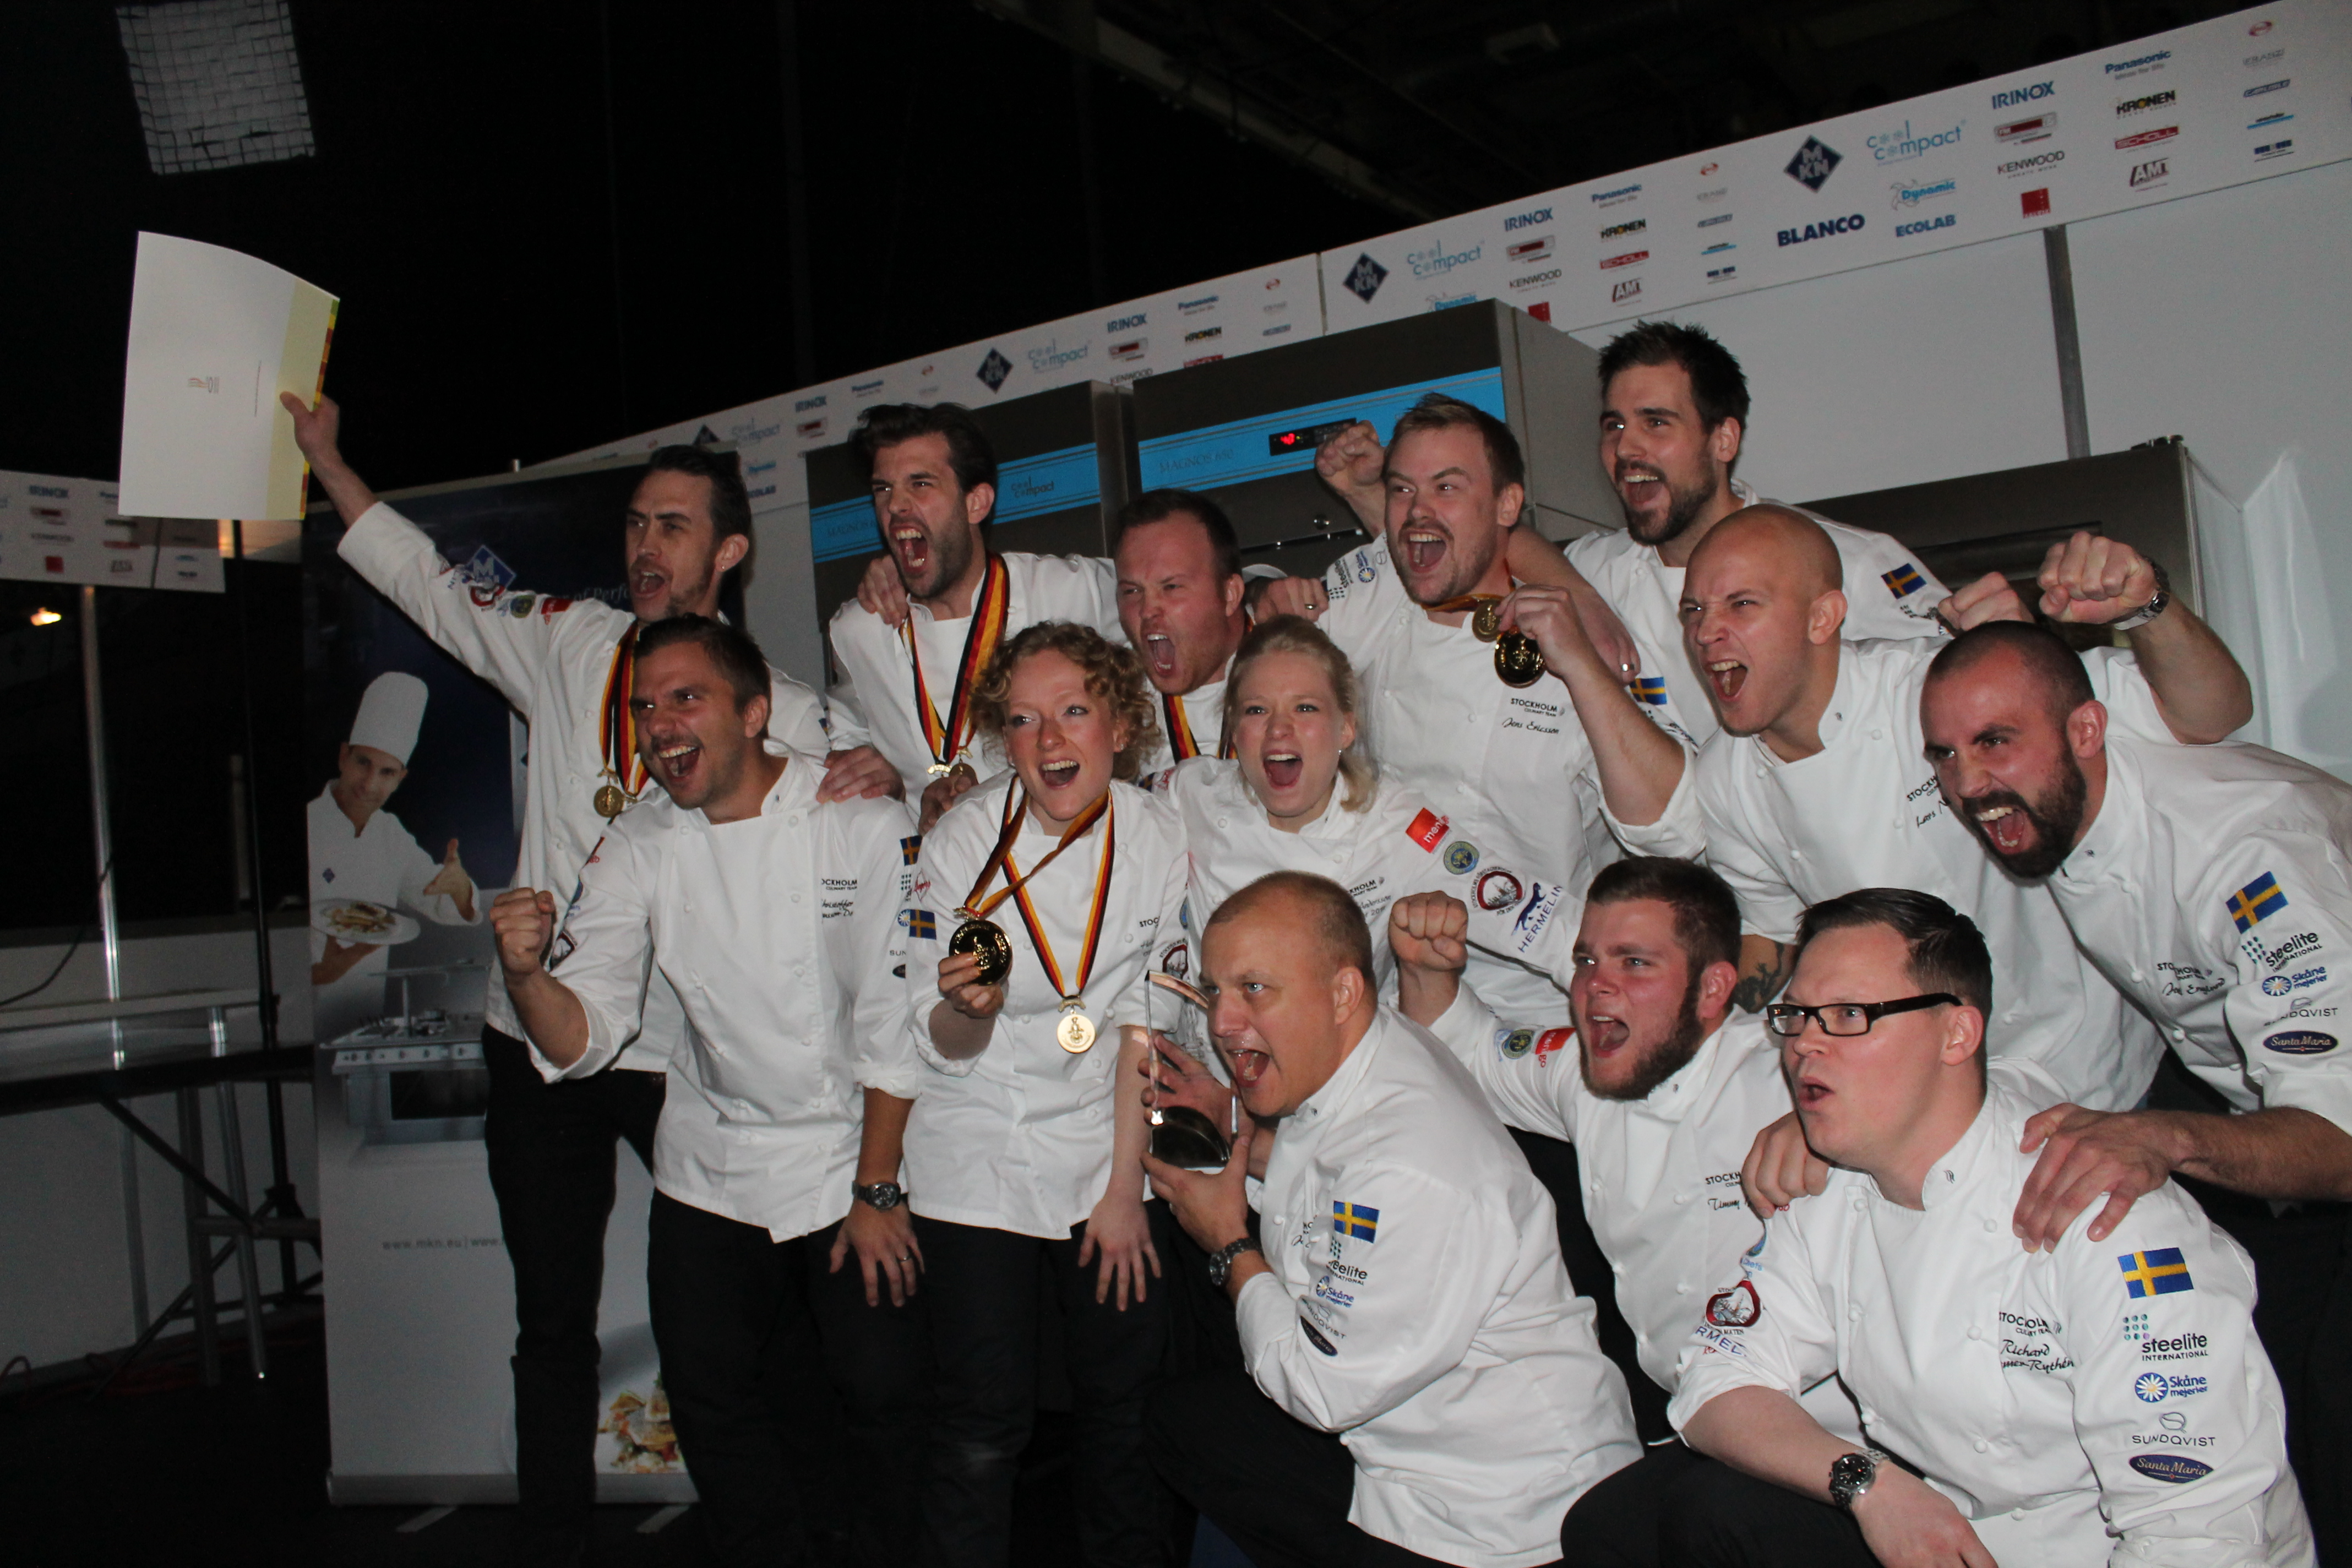 Stockholm Regional Culinary Team Olympic Champions